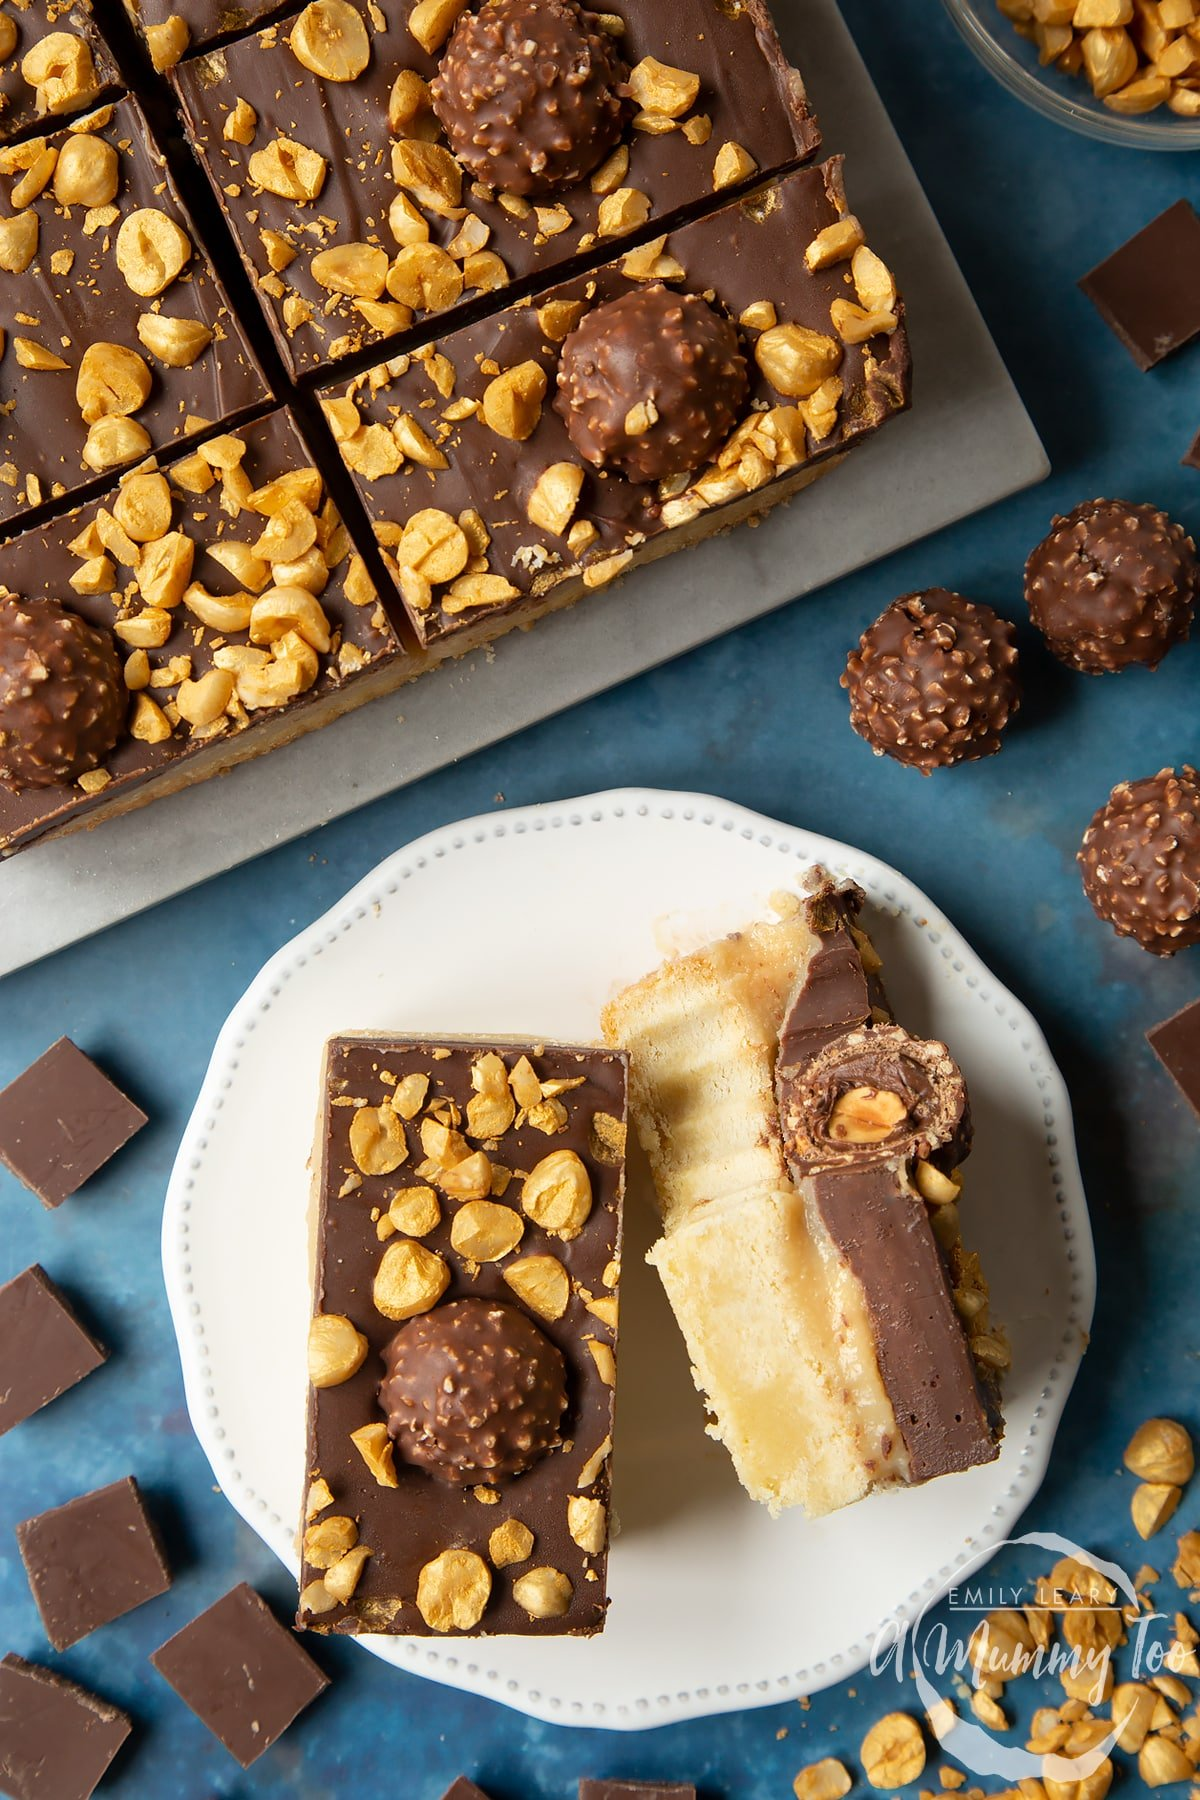 Two Ferrero Rocher slices on a plate. One is turned on its side and has a bite out of it. To the side is a tray with more slices.